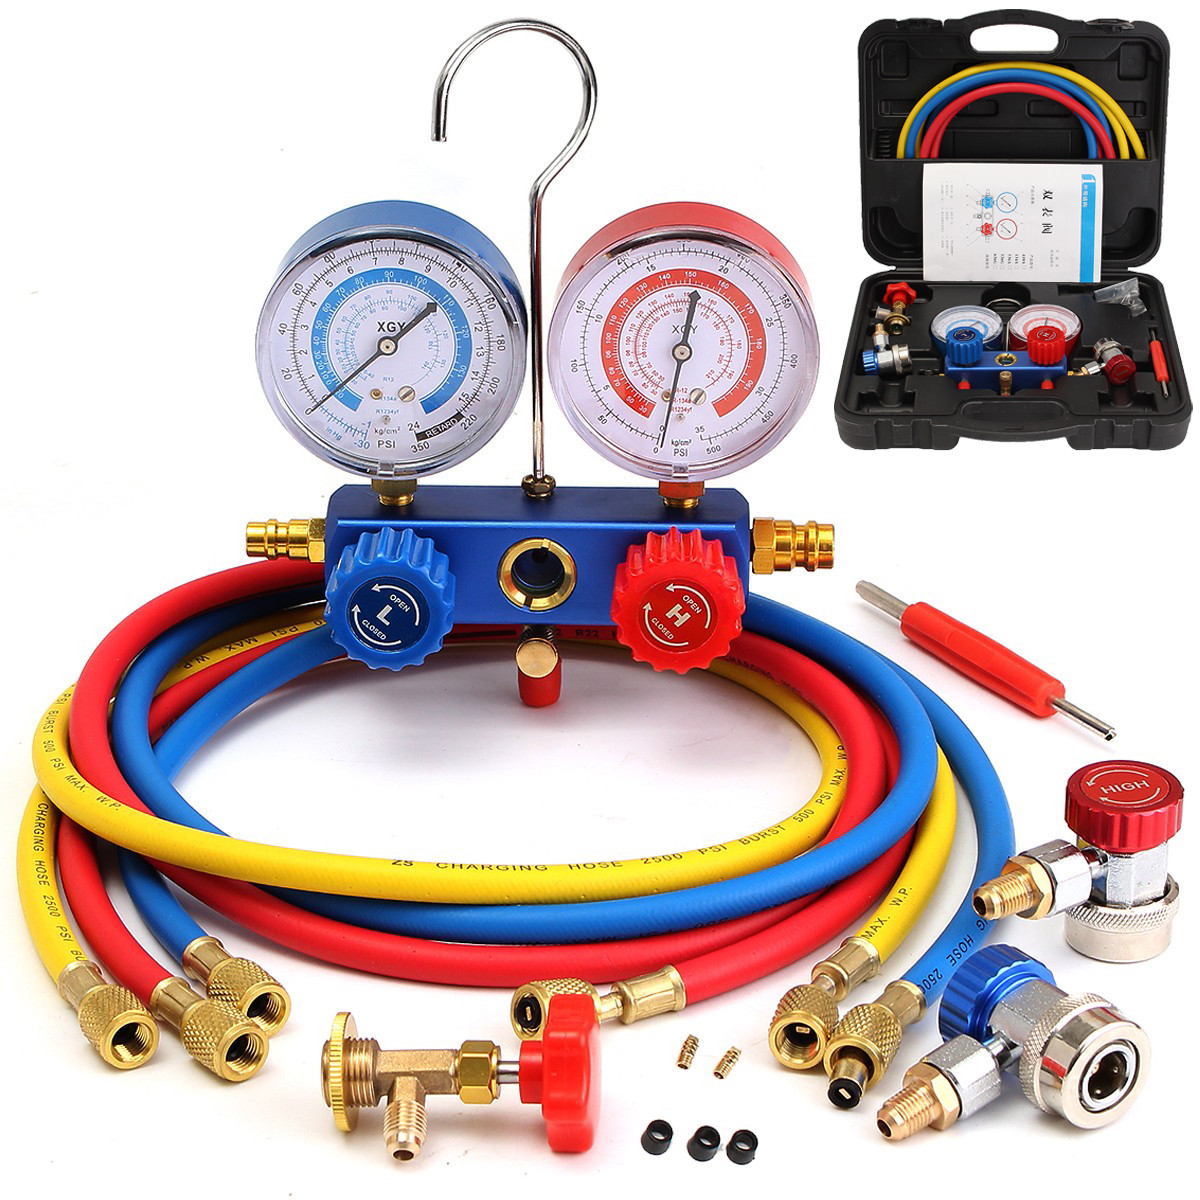 R134A HVAC A/C Refrigeration Kit Manifold Gauge Set R22 R12 R134A Auto Refrigerant H/L Car Air Conditioning Repair Tool Gauge new manifold gauge set charging for r134a r12 r22 r404z air condition refrigeration